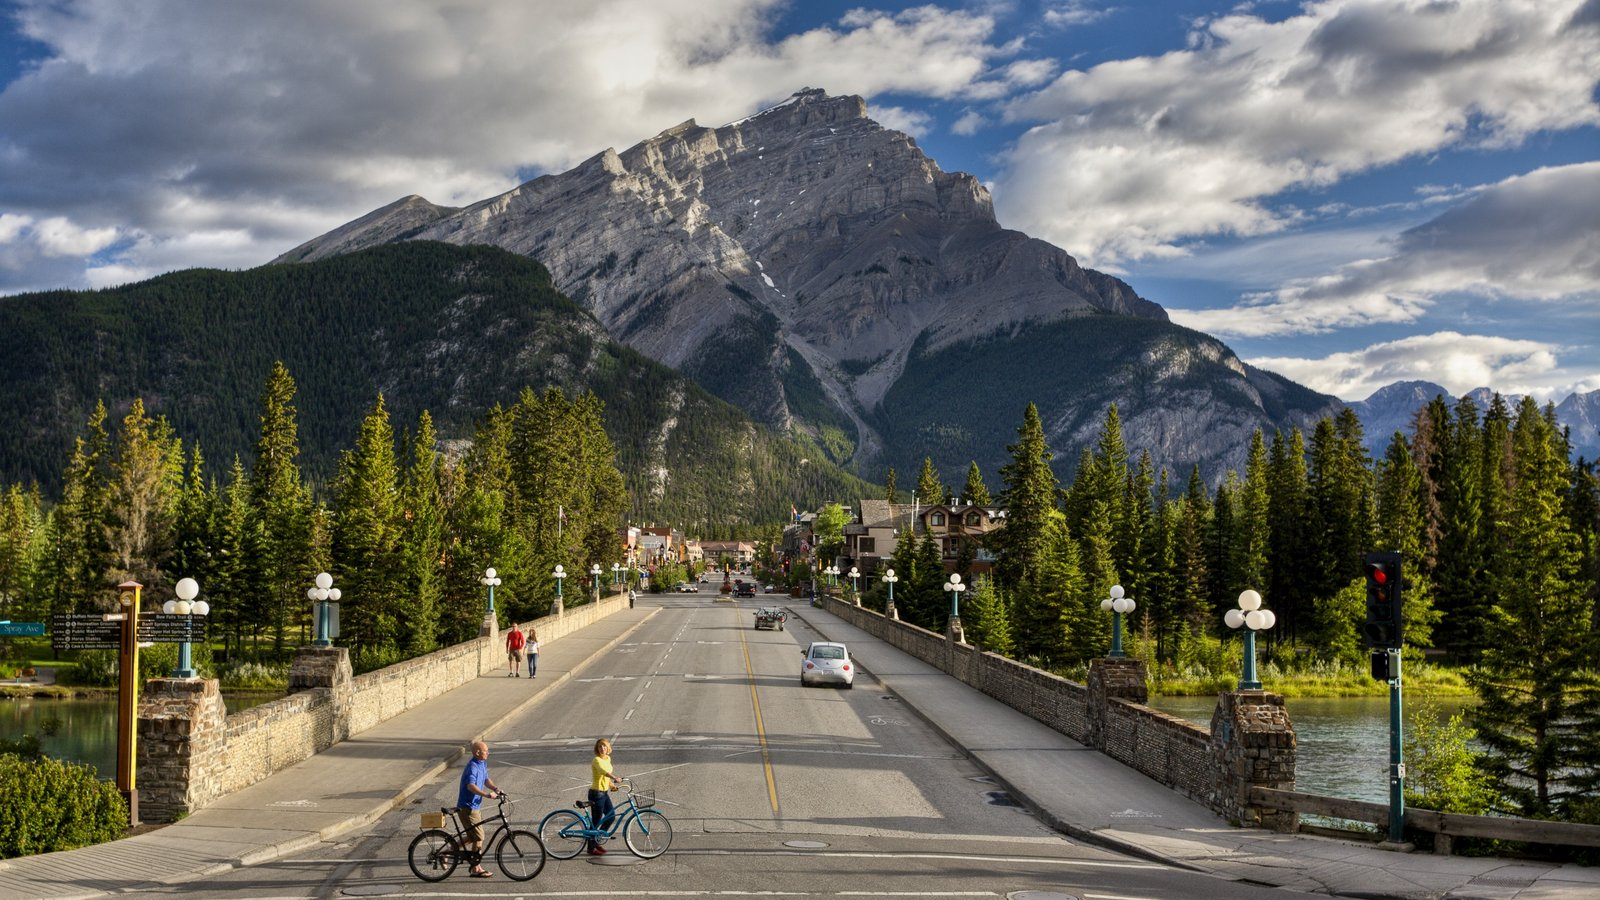 Banff which includes mountains